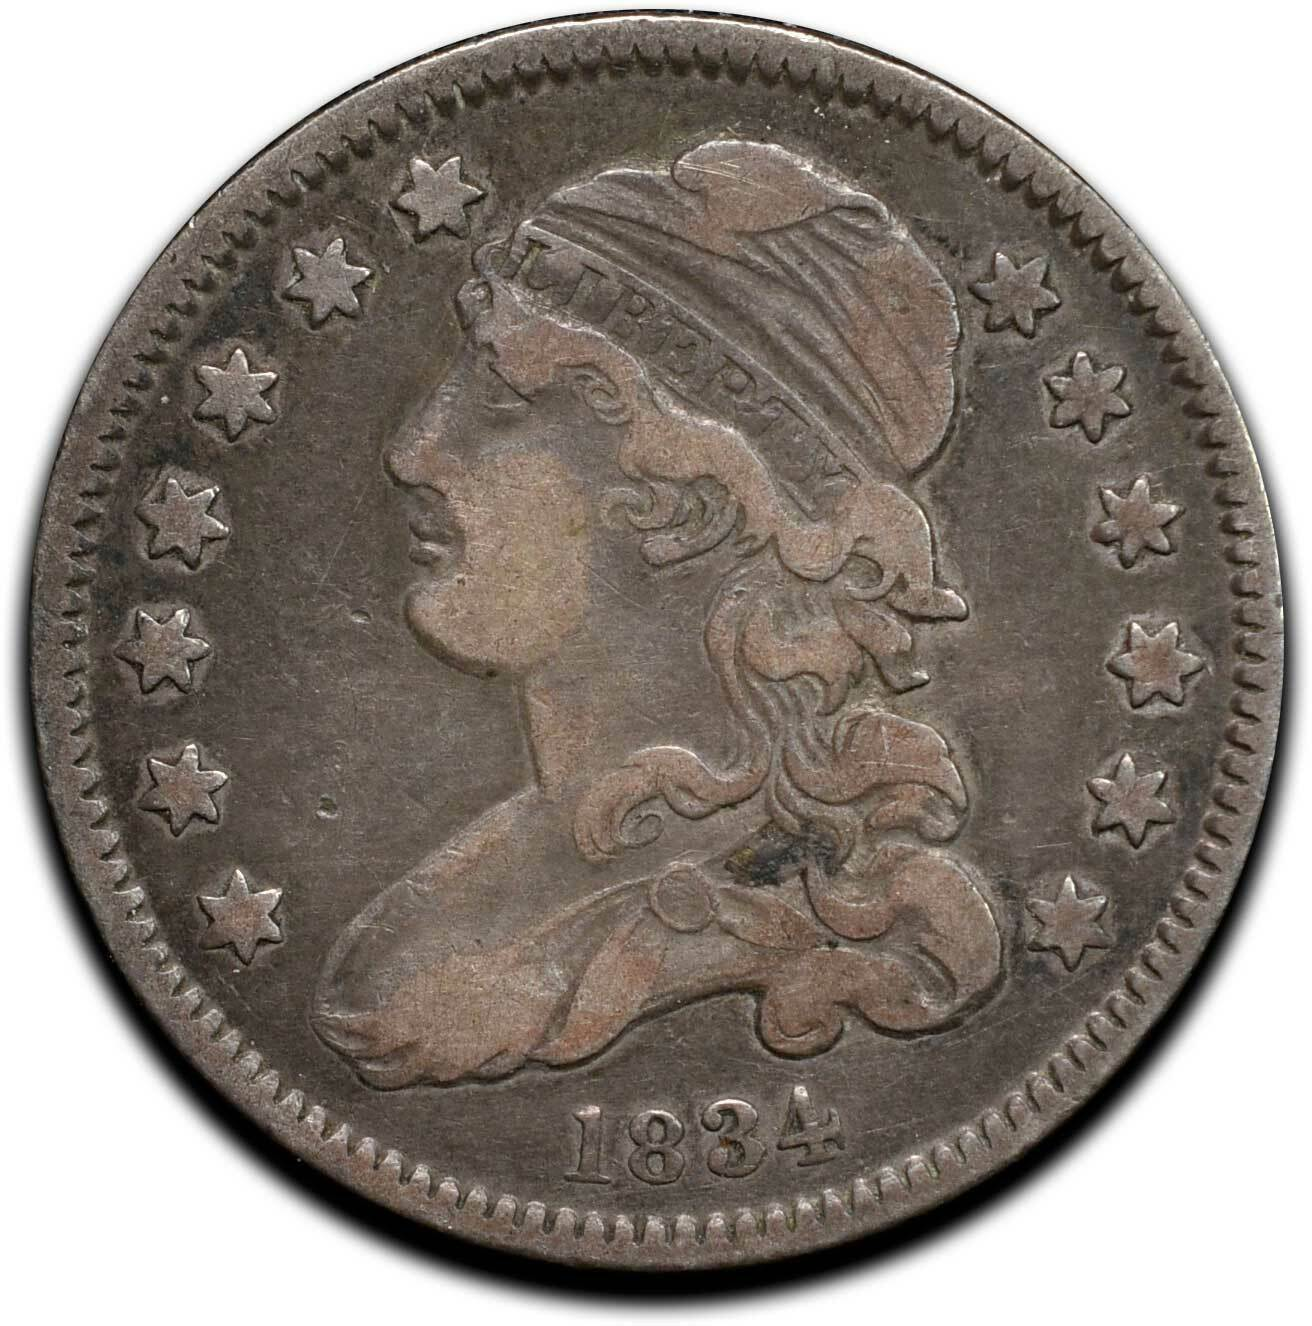 1834 Capped Bust Silver 25¢ Quarter Coin Lot# A 512